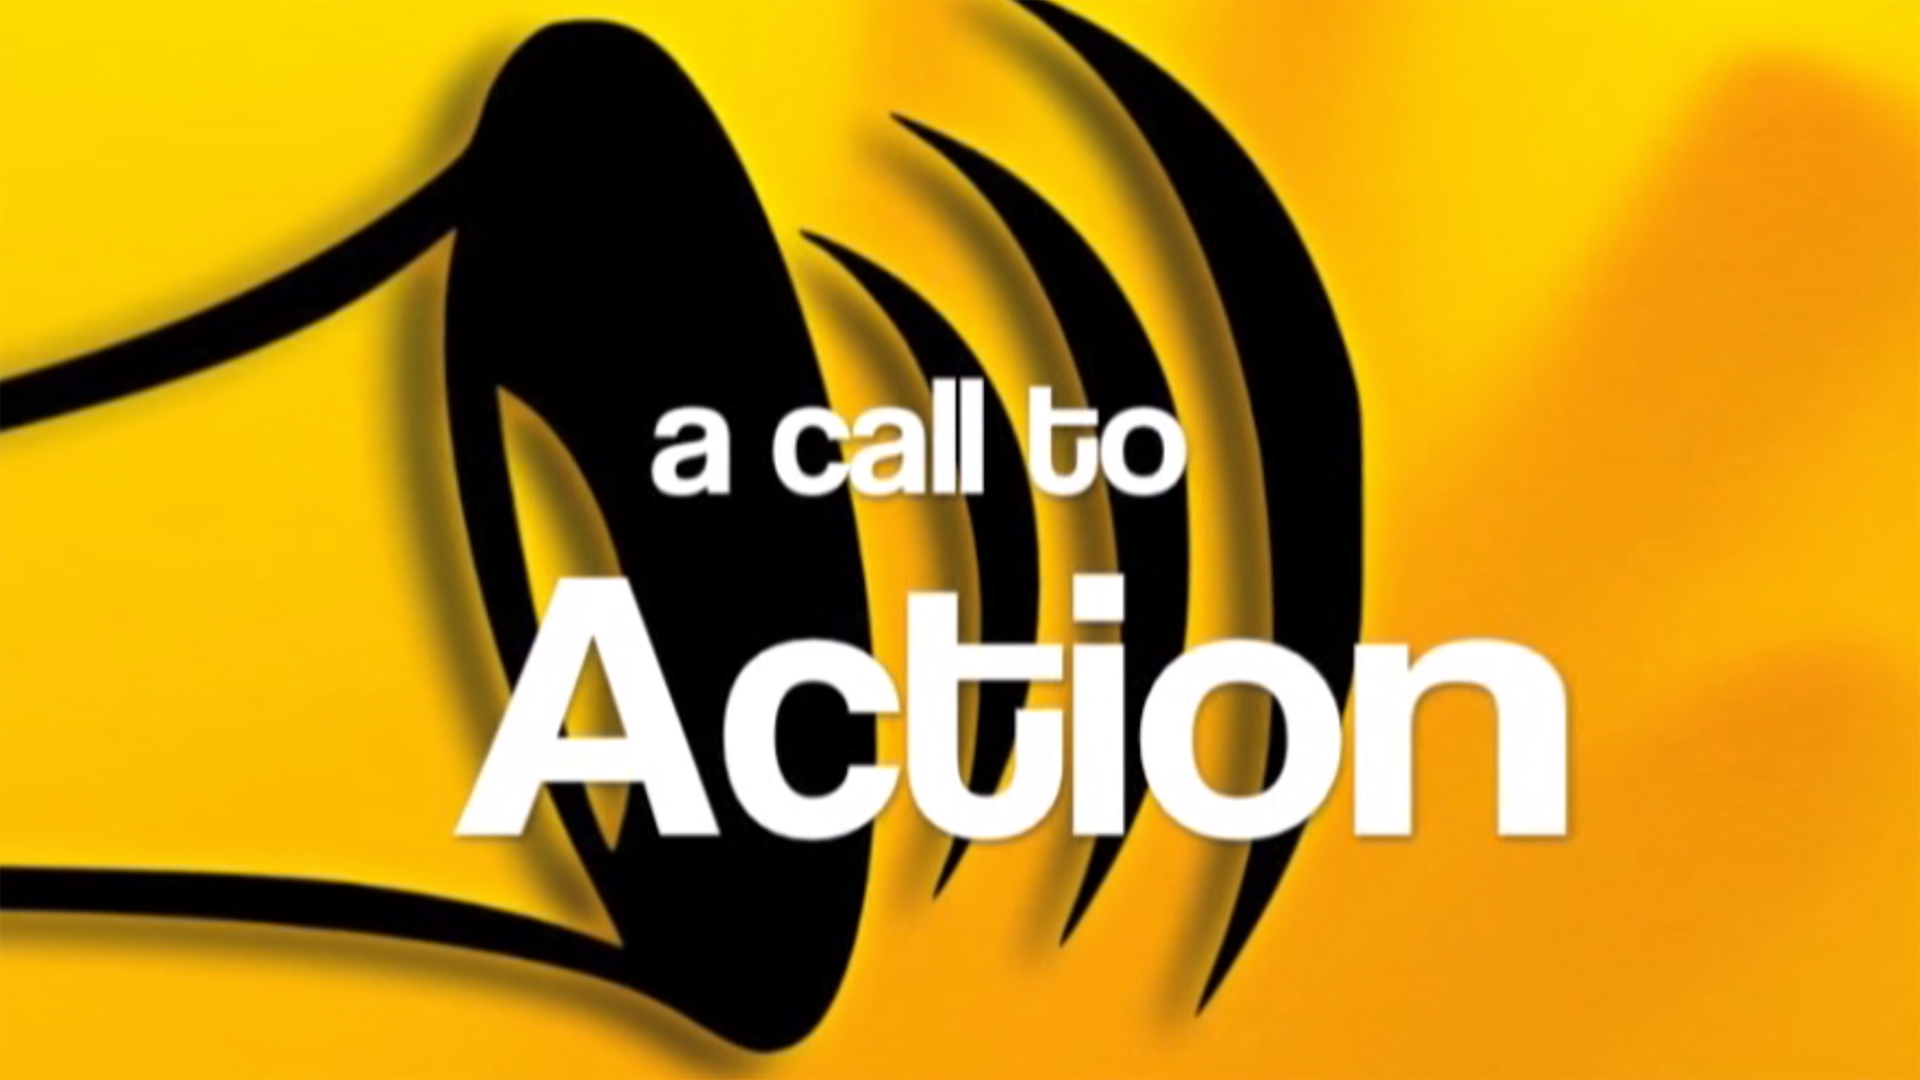 A Call to Action – June 11, 2015